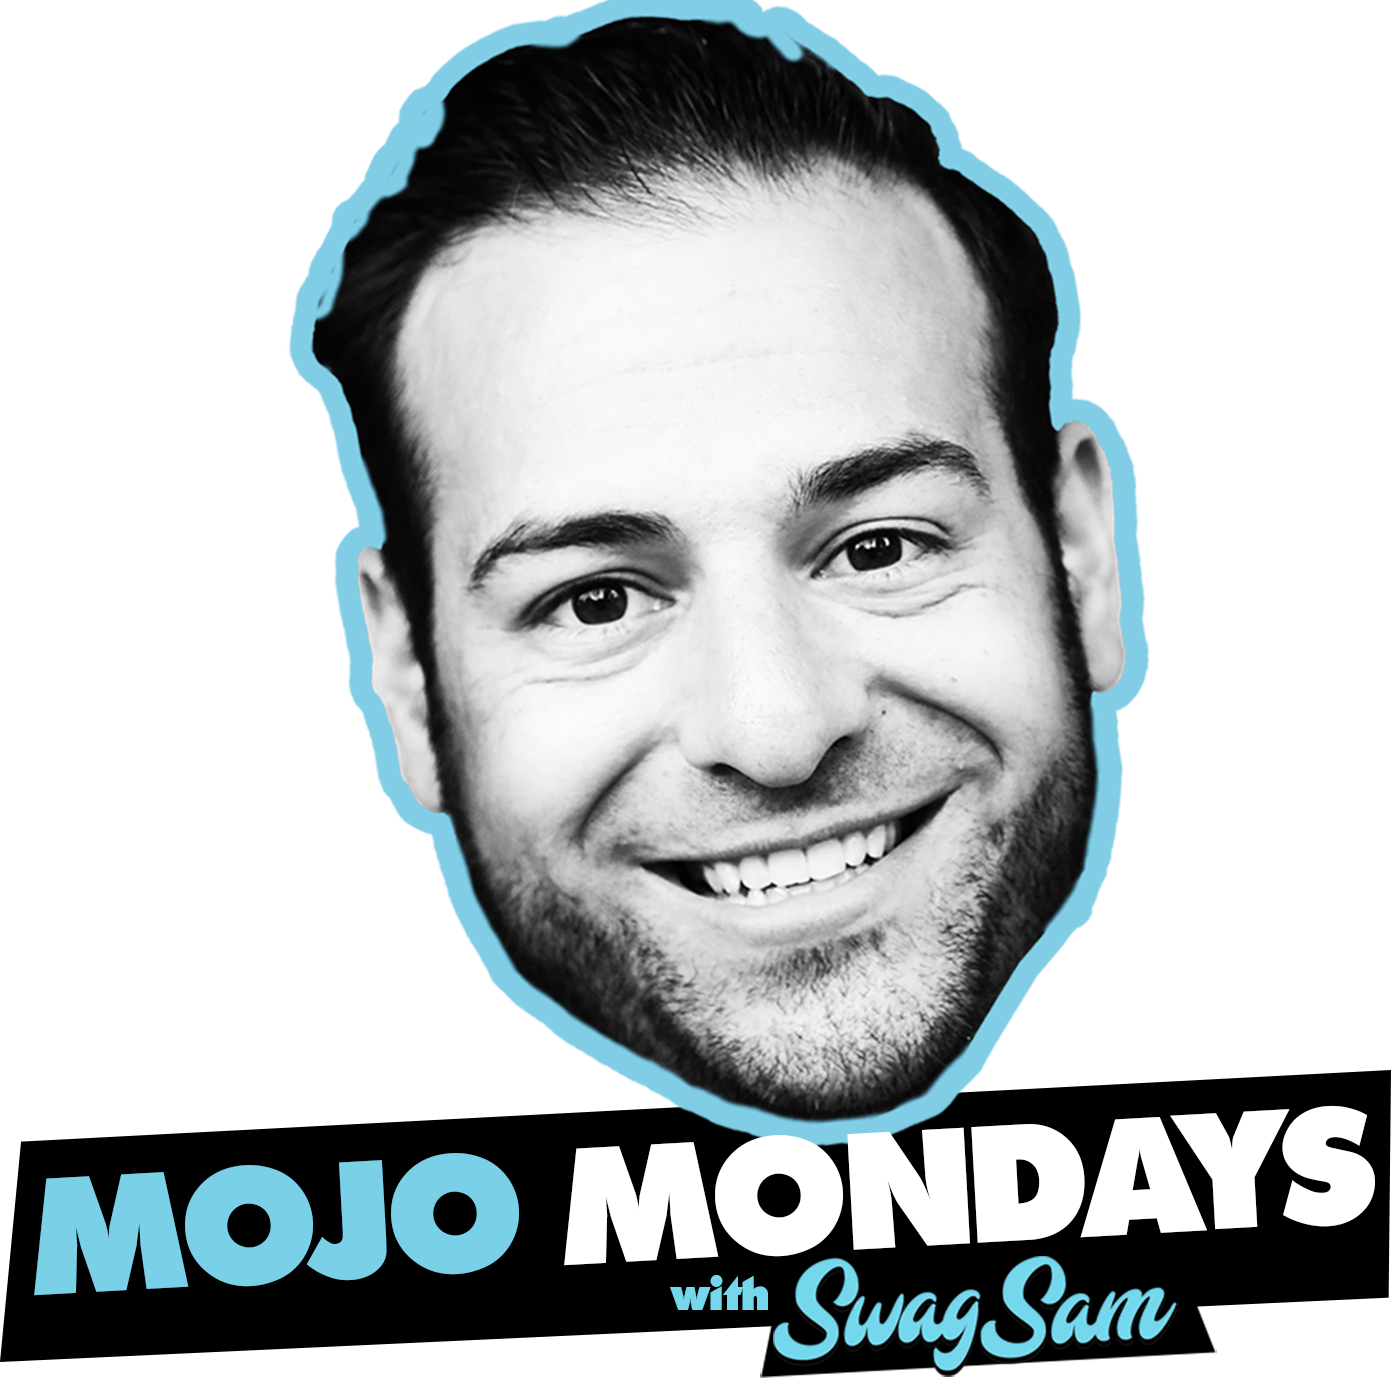 mojo-mondays-teal-v2-transparent-